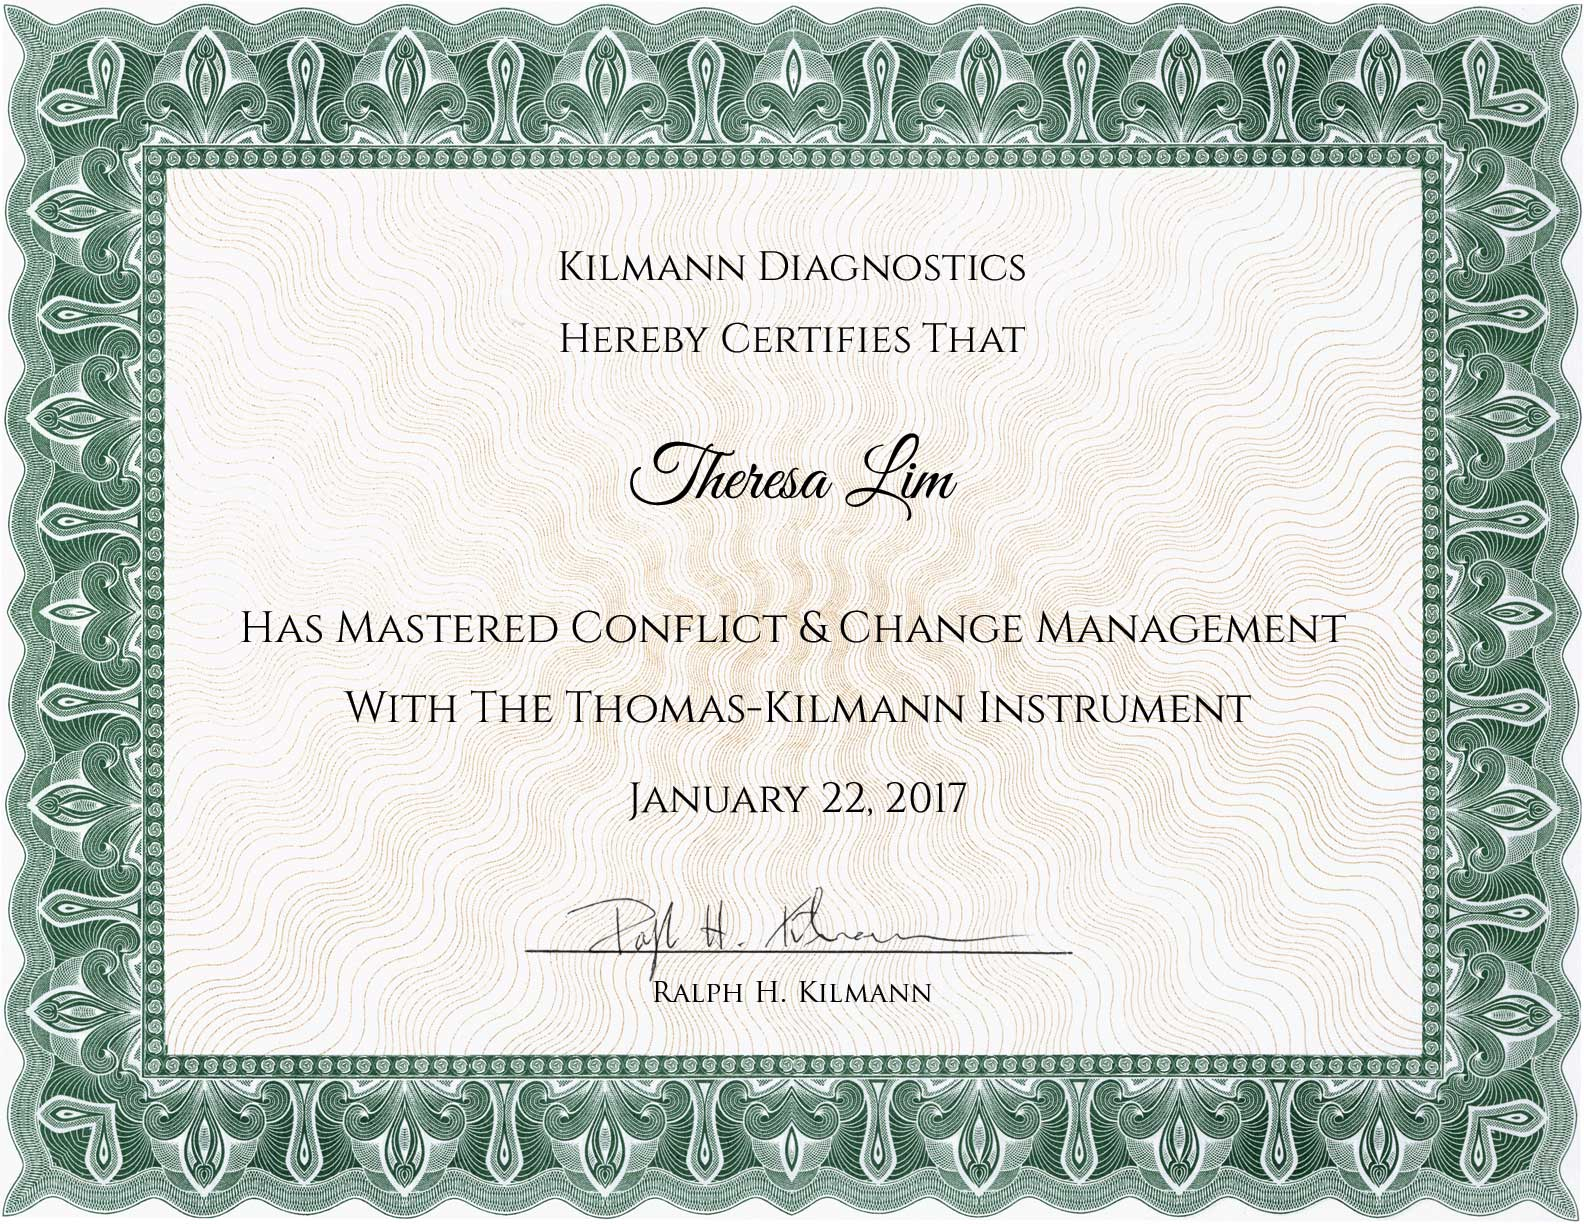 Certification in Conflict Management and Change Management